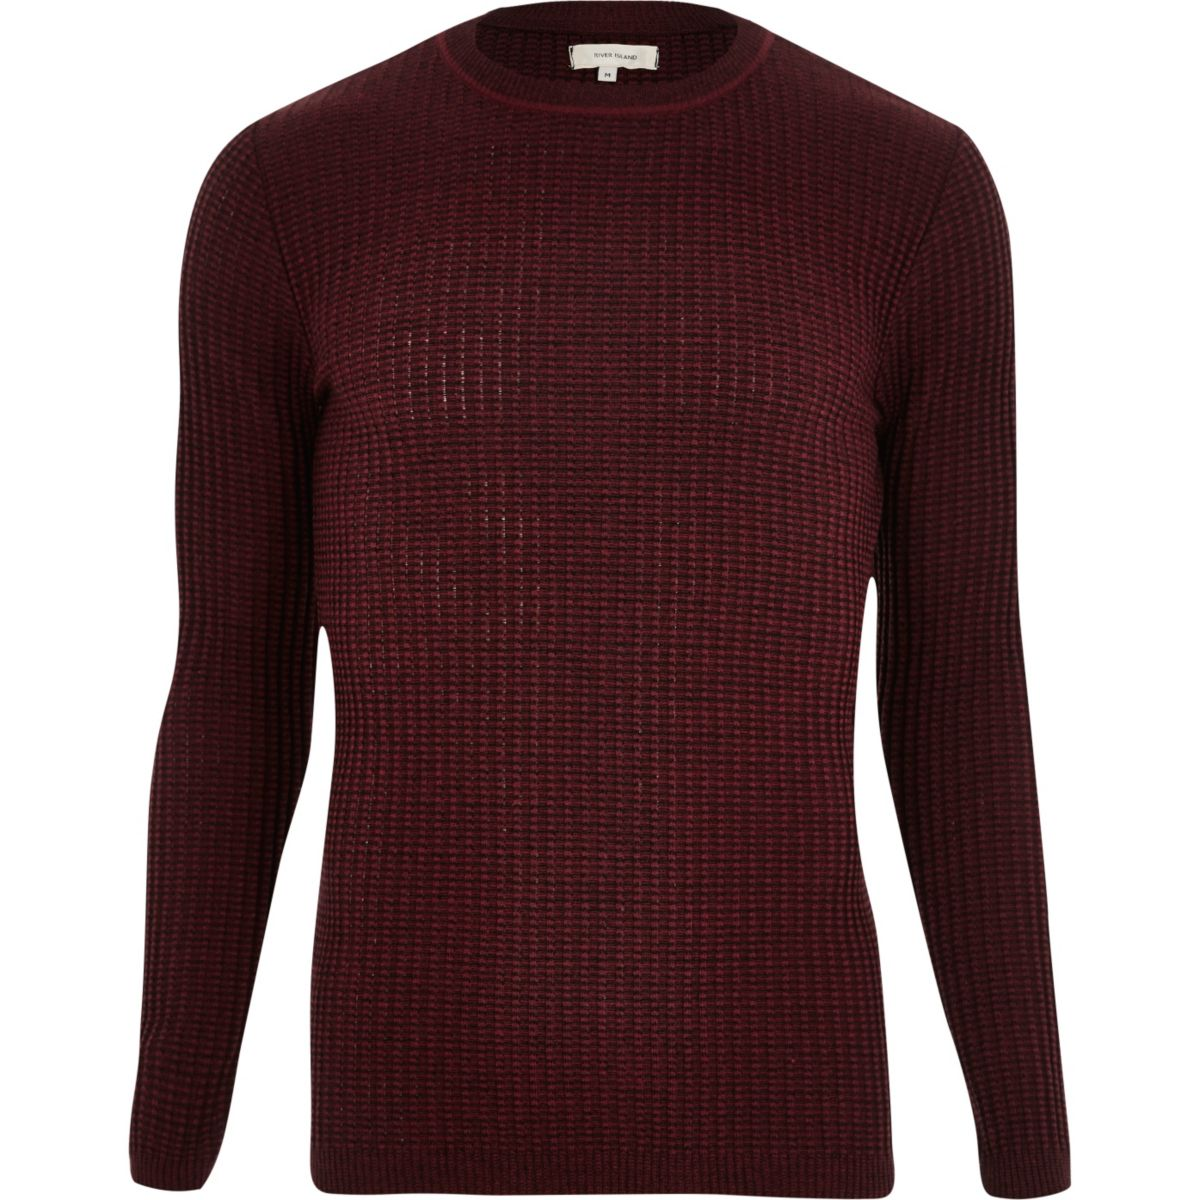 Burgundy ribbed slim fit sweater